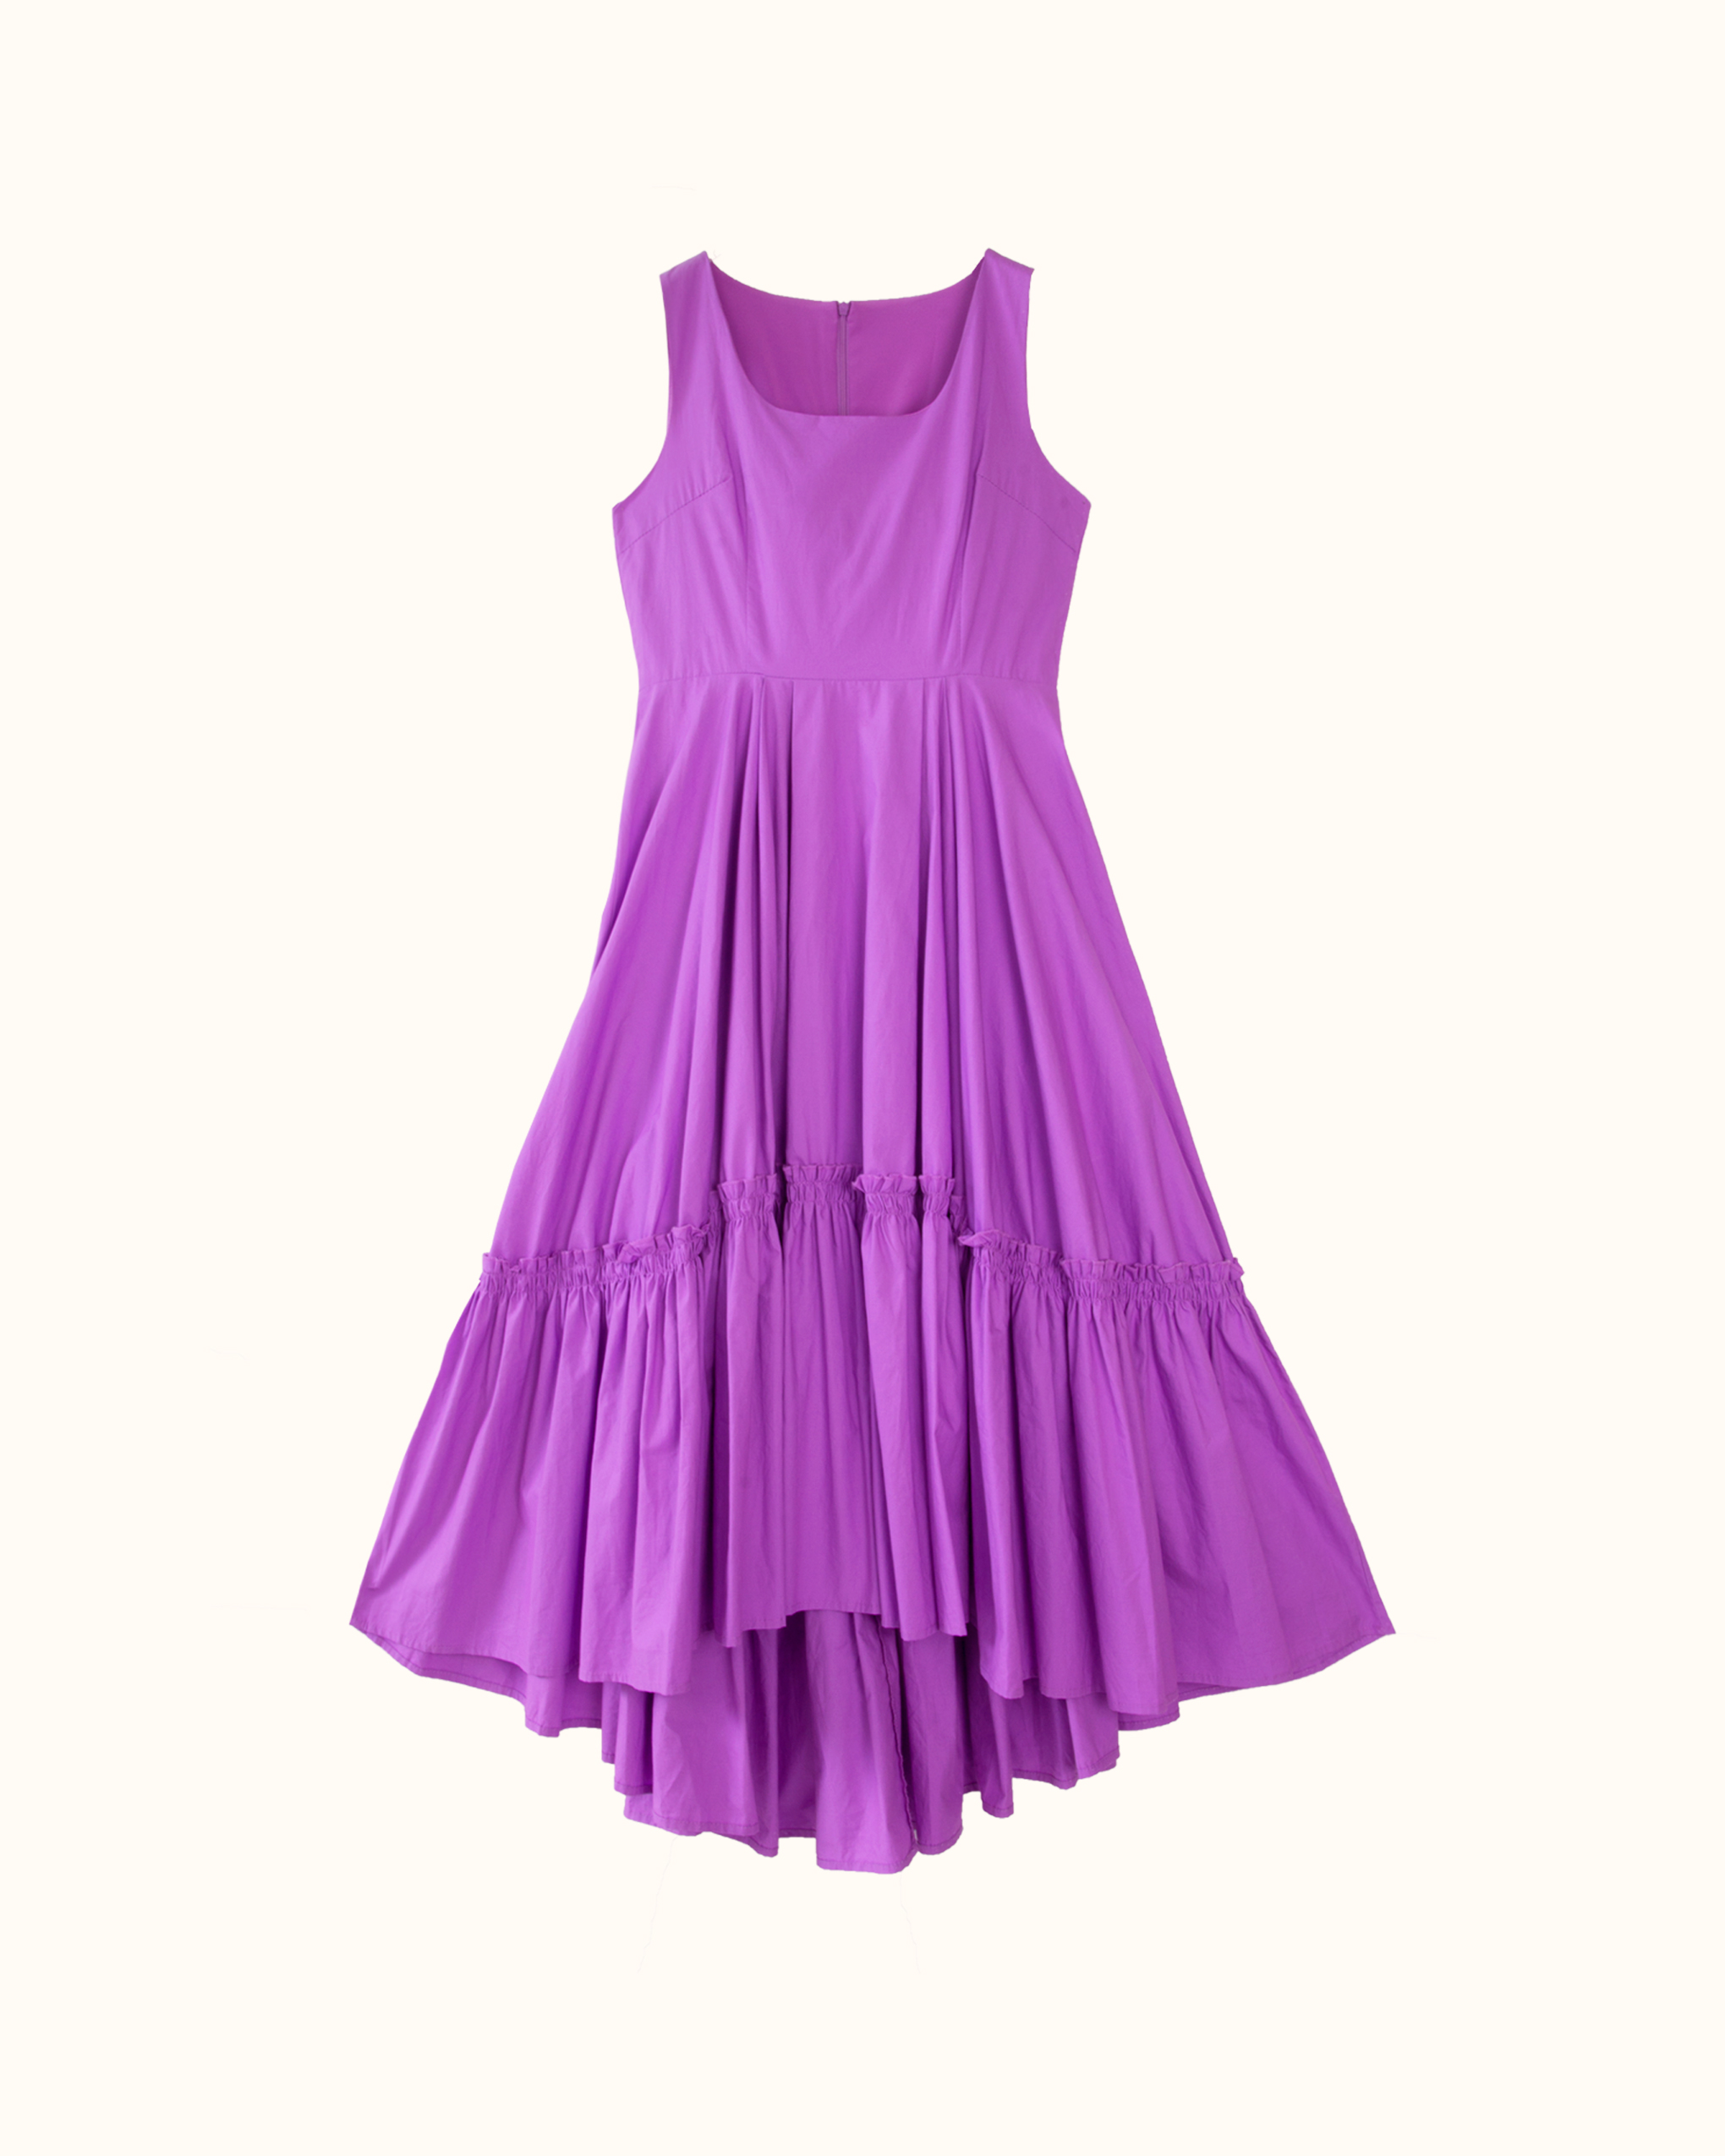 A violet sleeveless curved gathered skirt cotton dress.